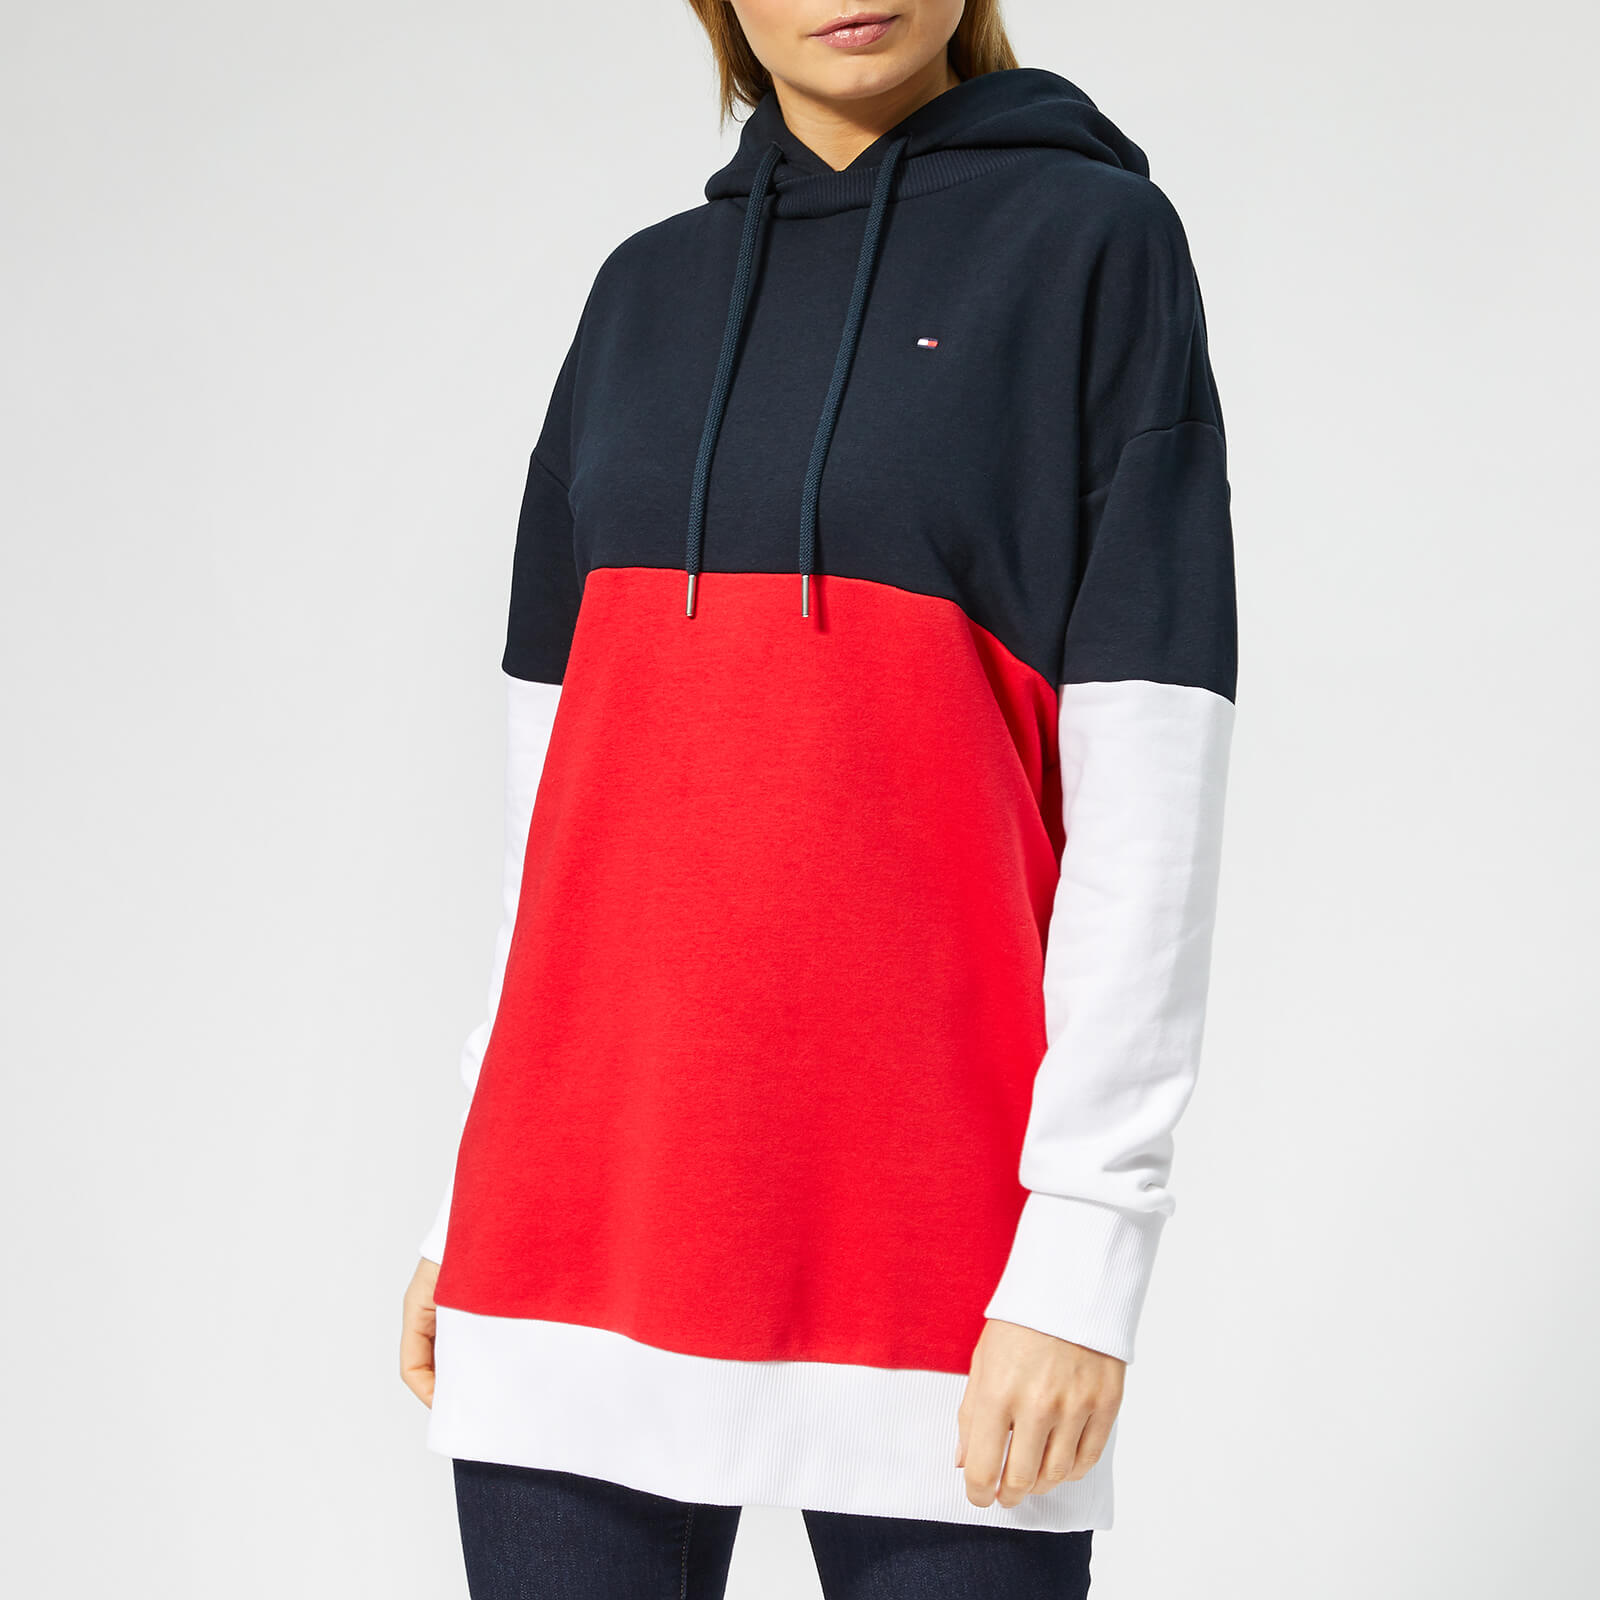 f09c3c46 Tommy Hilfiger Women's Talina Hoodie - Midnight/Red/White Womens Clothing |  TheHut.com